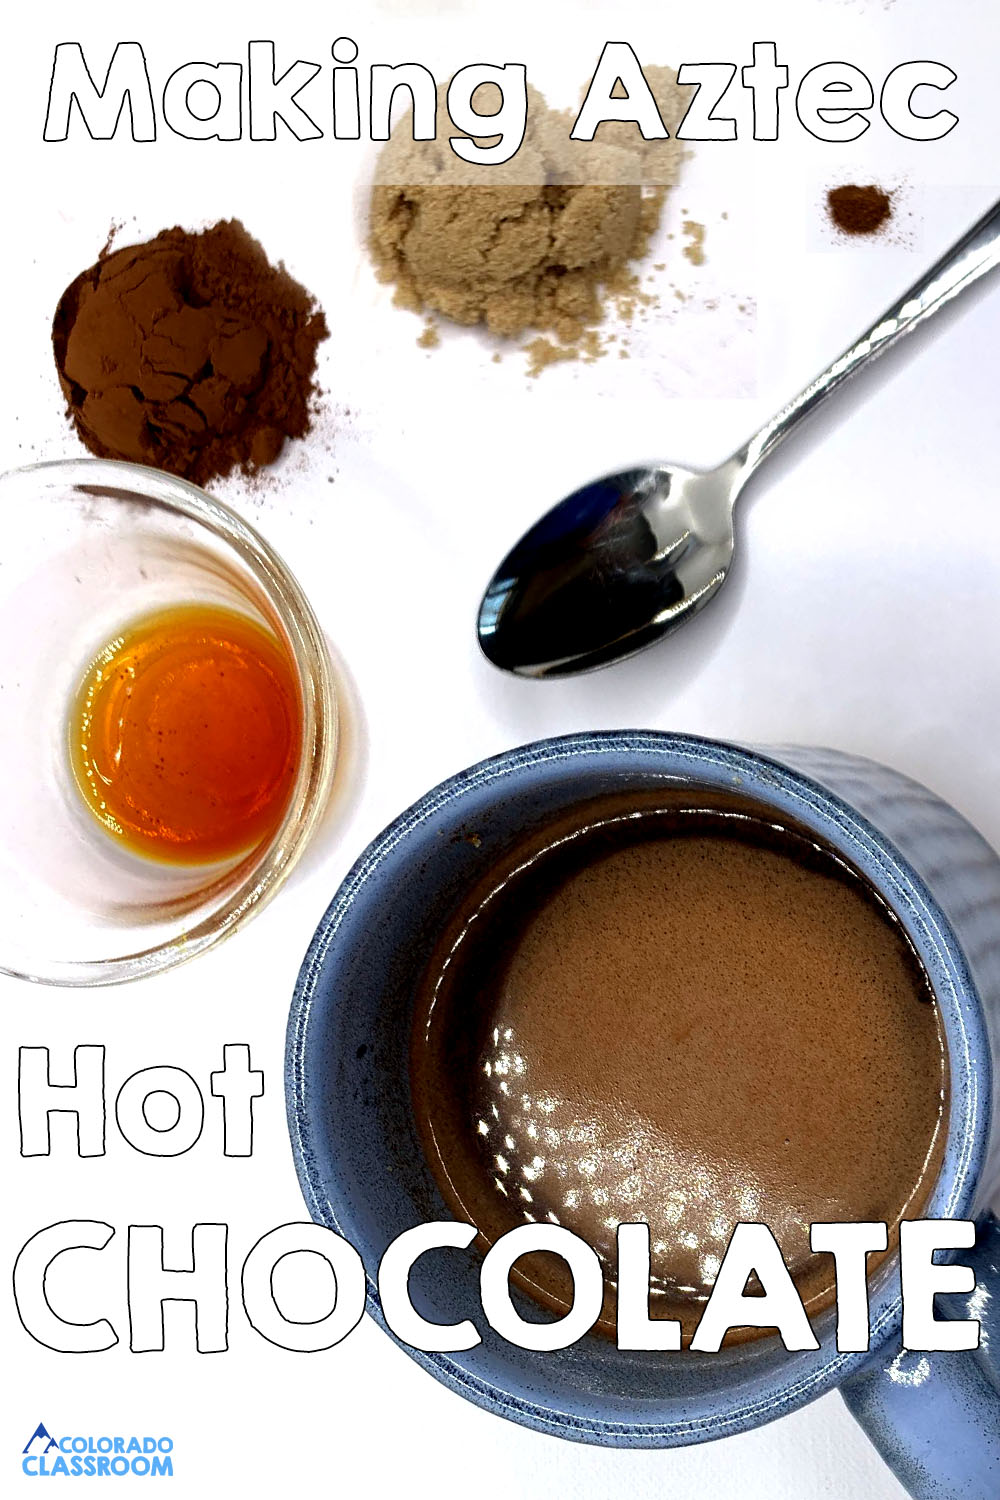 Ingredients for authentic Aztec Hot Chocolate laid out in small piles on a white background.